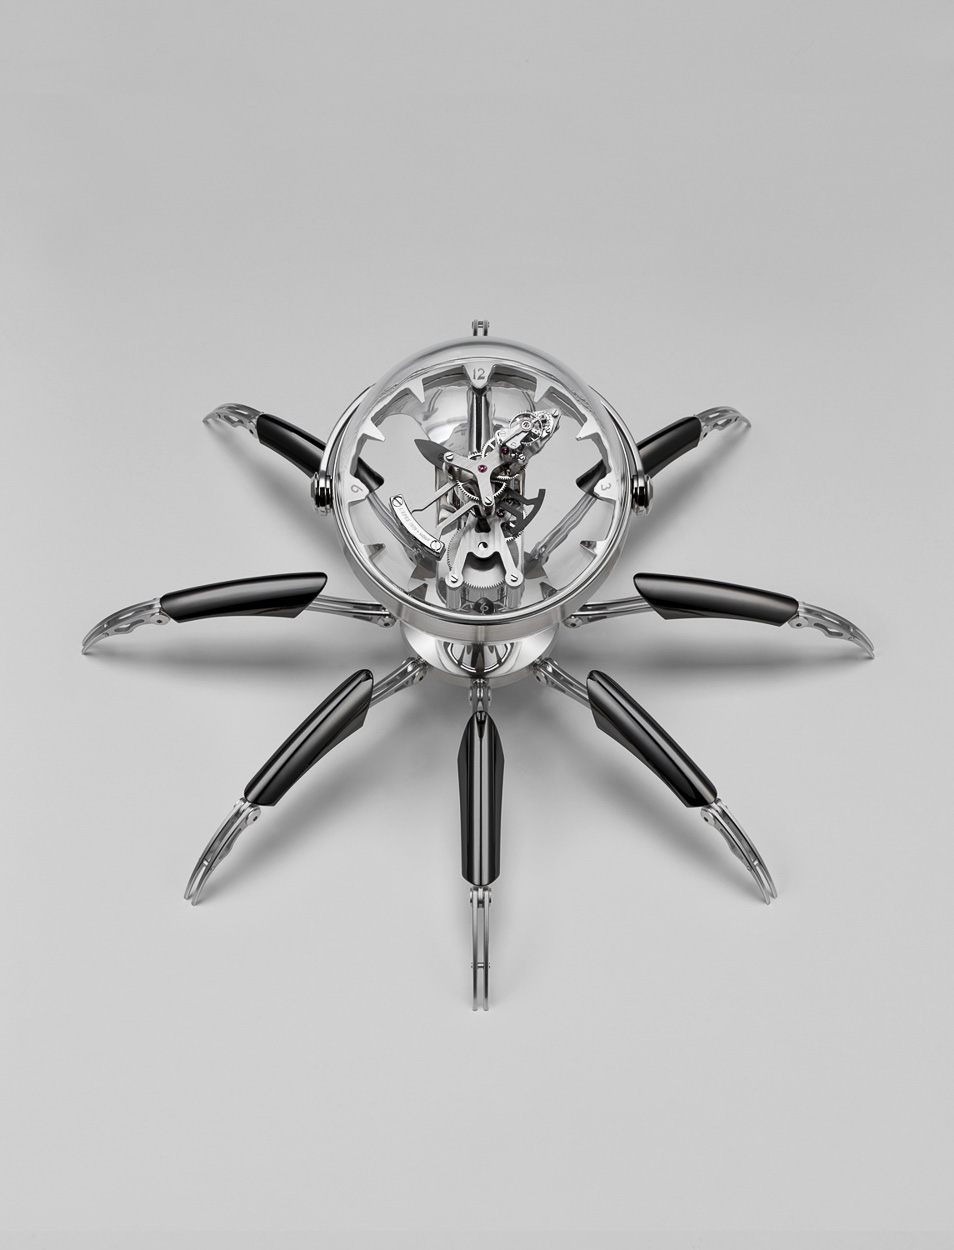 MB&F Octopod Time with legs and mystery